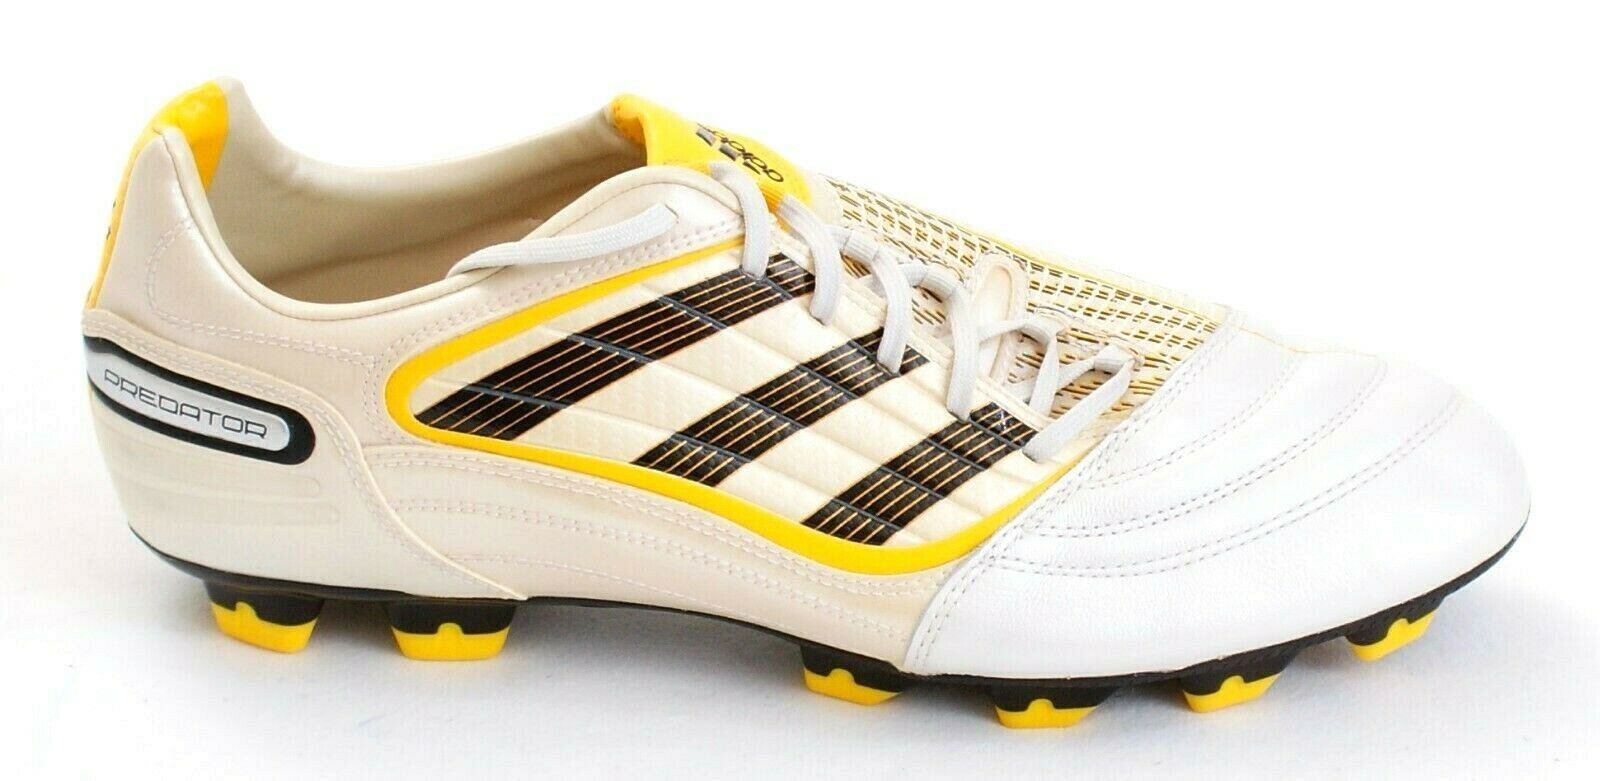 Adidas Predator Absolado White, Yellow & Black FG Soccer Cleats Men's 12.5  NEW